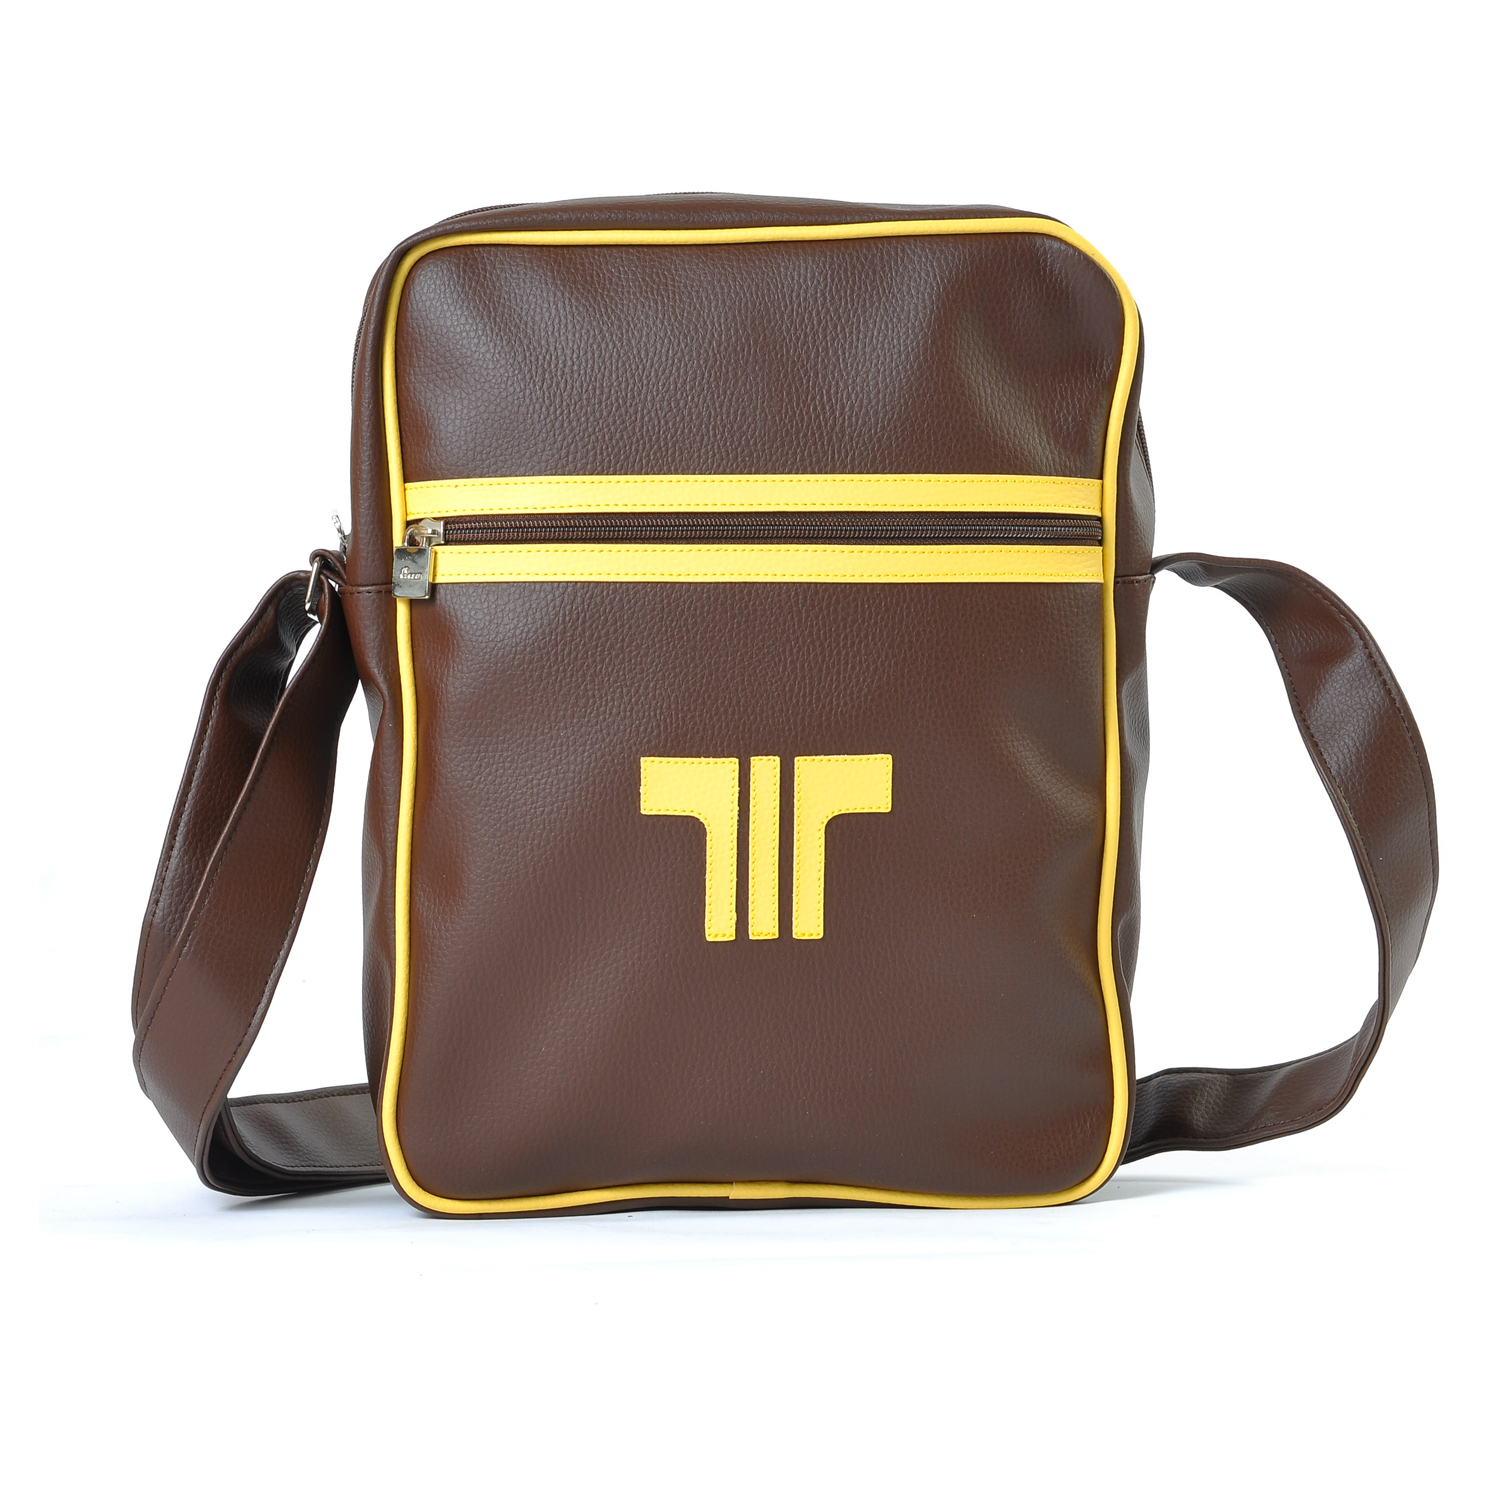 Tisza shoes - Bag - Brown-yellow